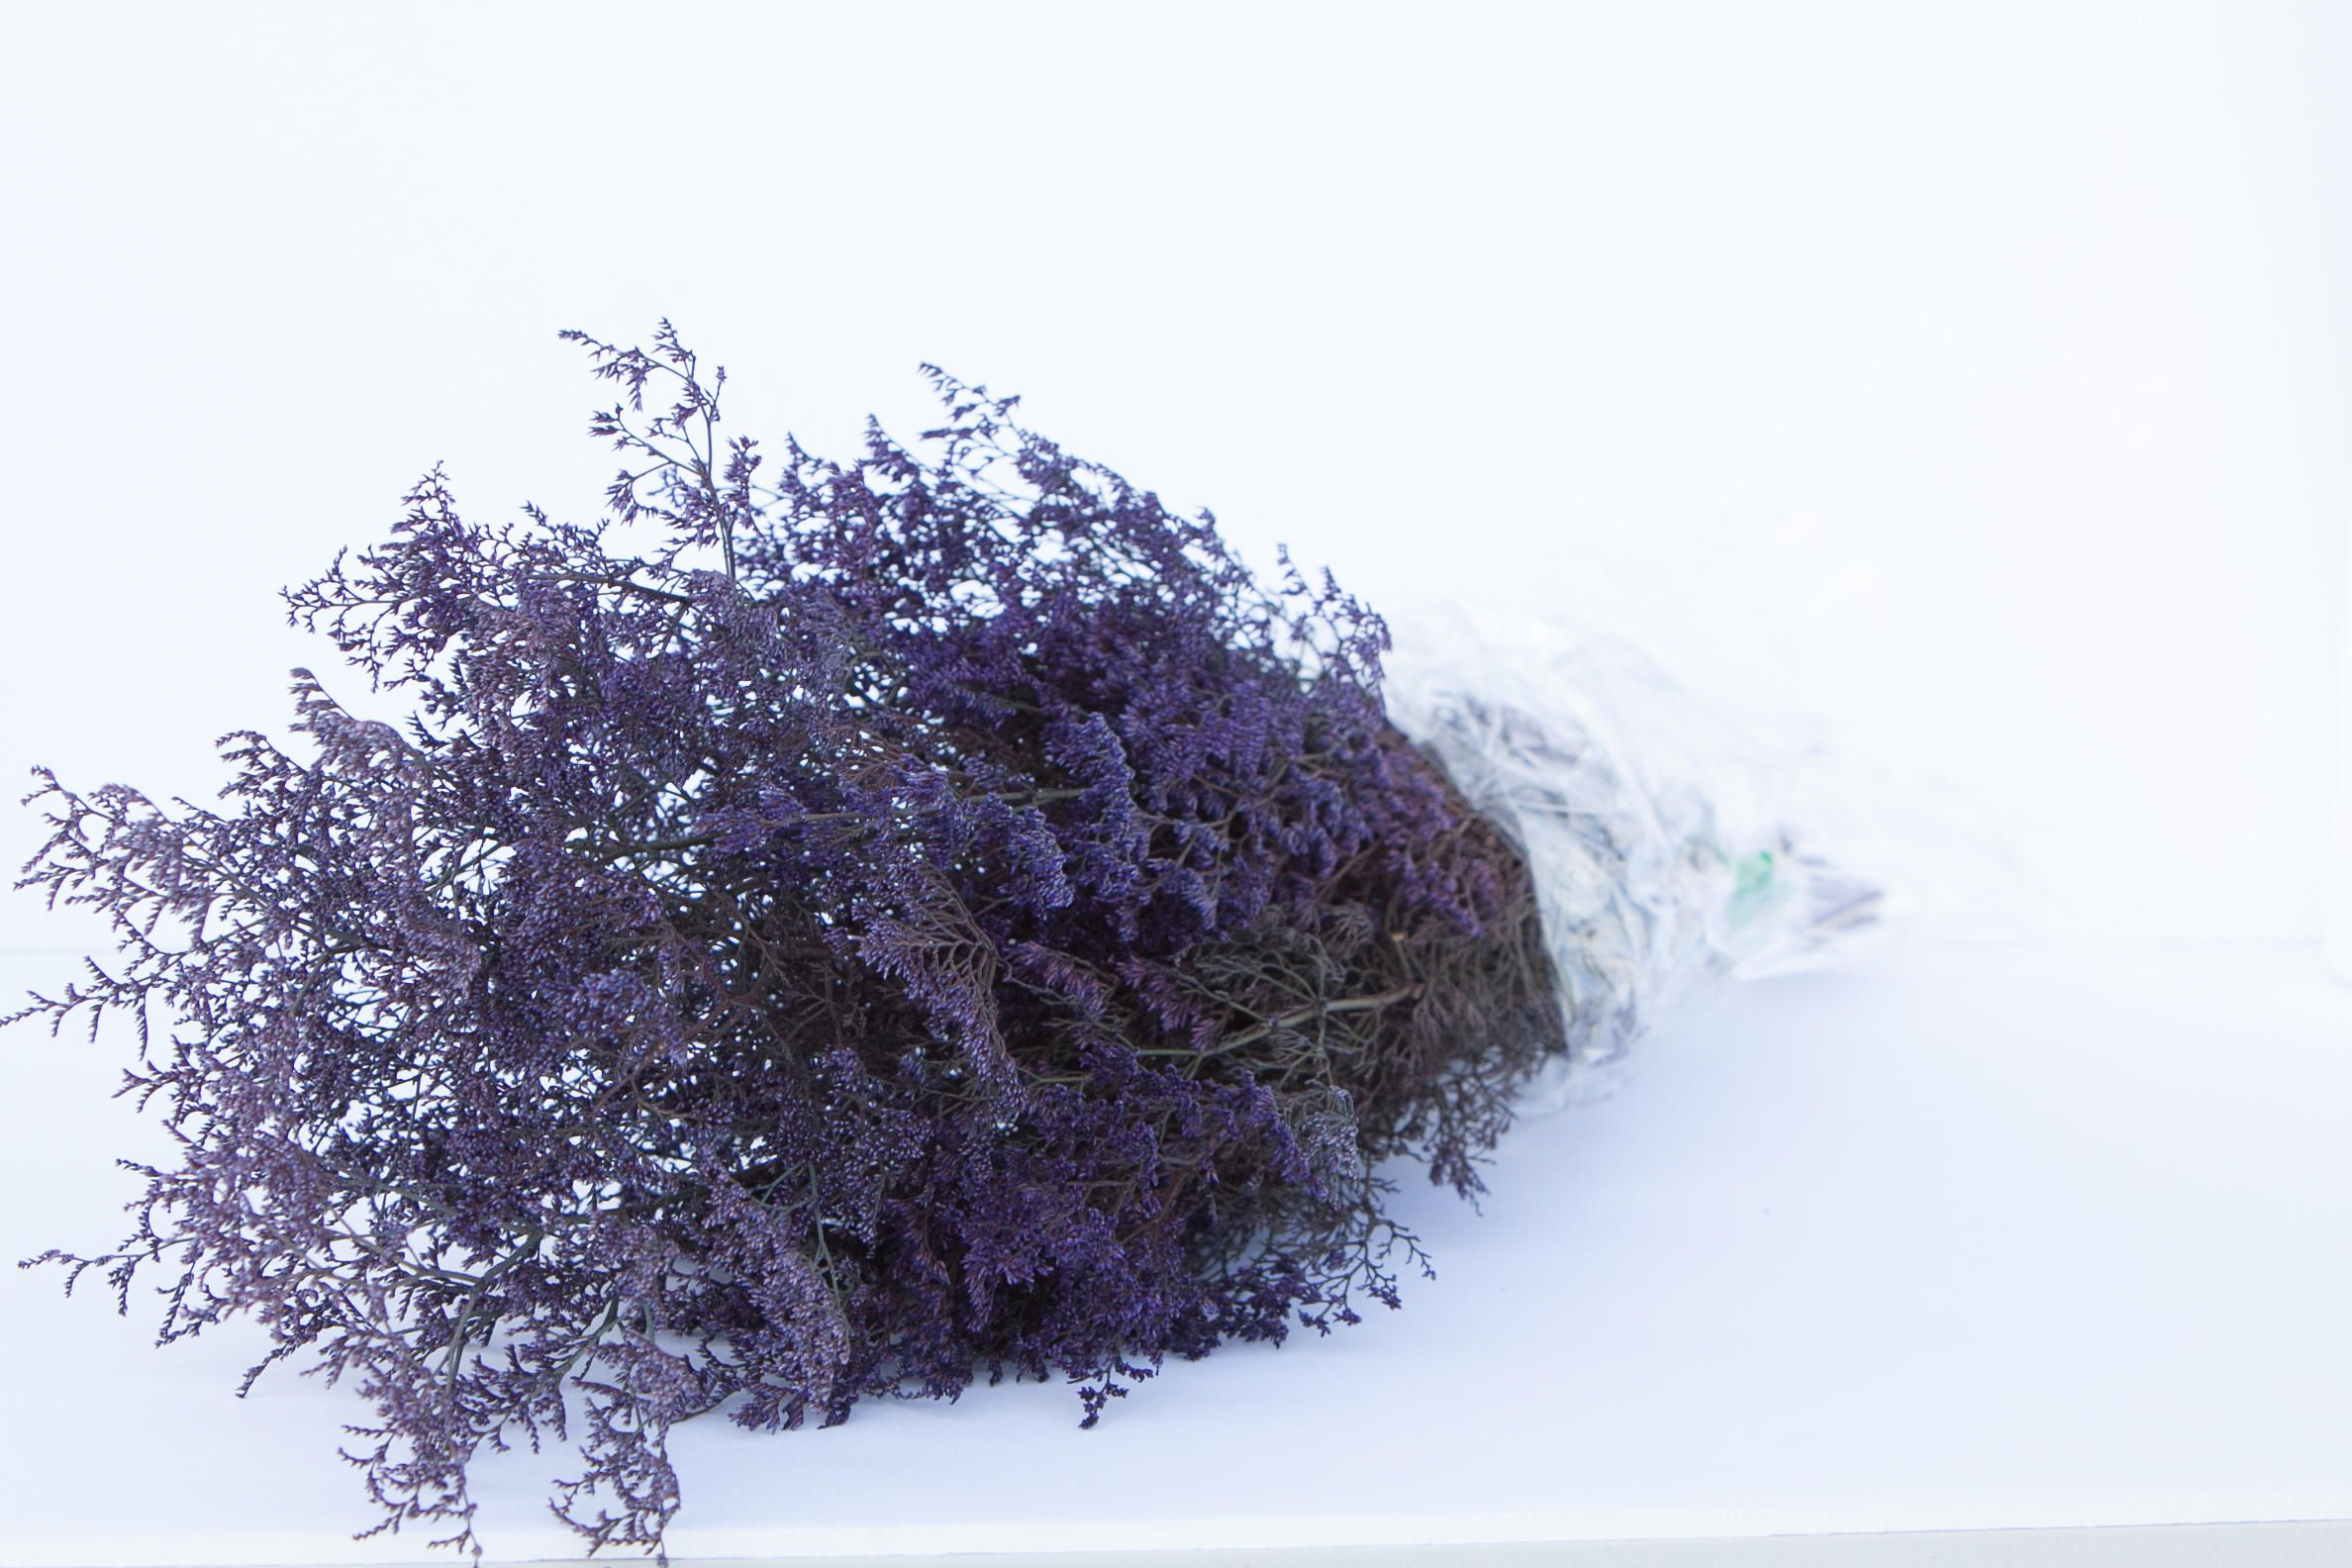 Preserved Dried Caspia Dyed Purple Preserved Misty Preserved Caspia Purple Flowers Filler Flower Diy Fowers Purple Caspia Purple Flowers Flowers Diy Flowers